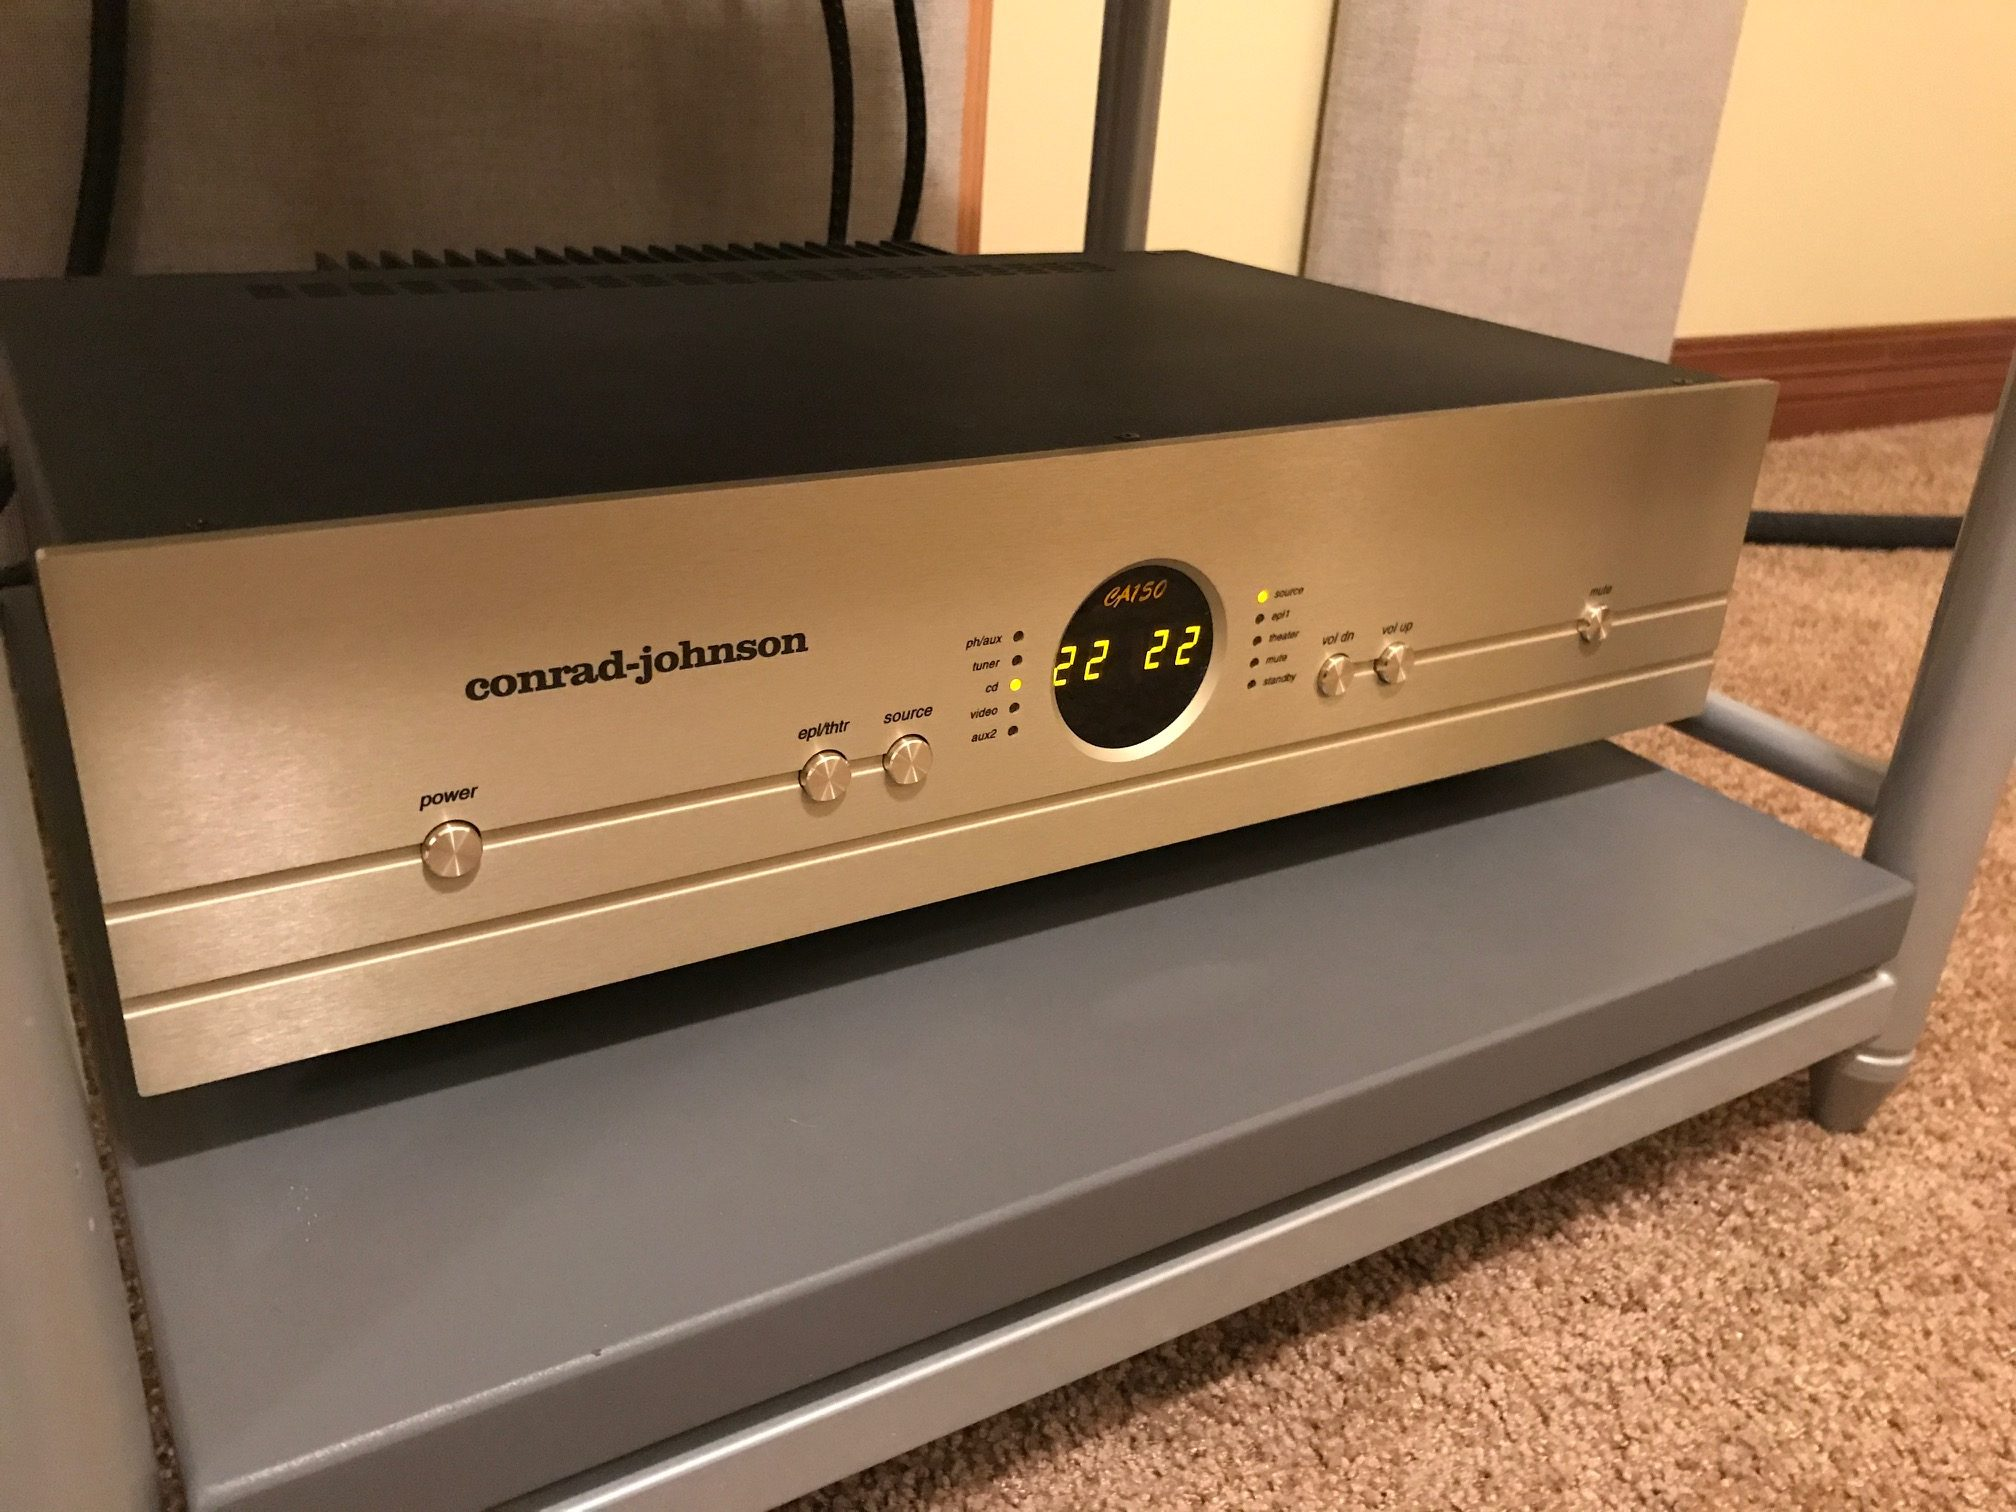 Conrad Johnson Ca150 Control Amplifier Class G H Amplifiers Do They Deliver On Their Promise Of High Audio So How Did The Sound In A Word Glorious Bill And Lew Have Knack For Imbuing Products With An Ineffable